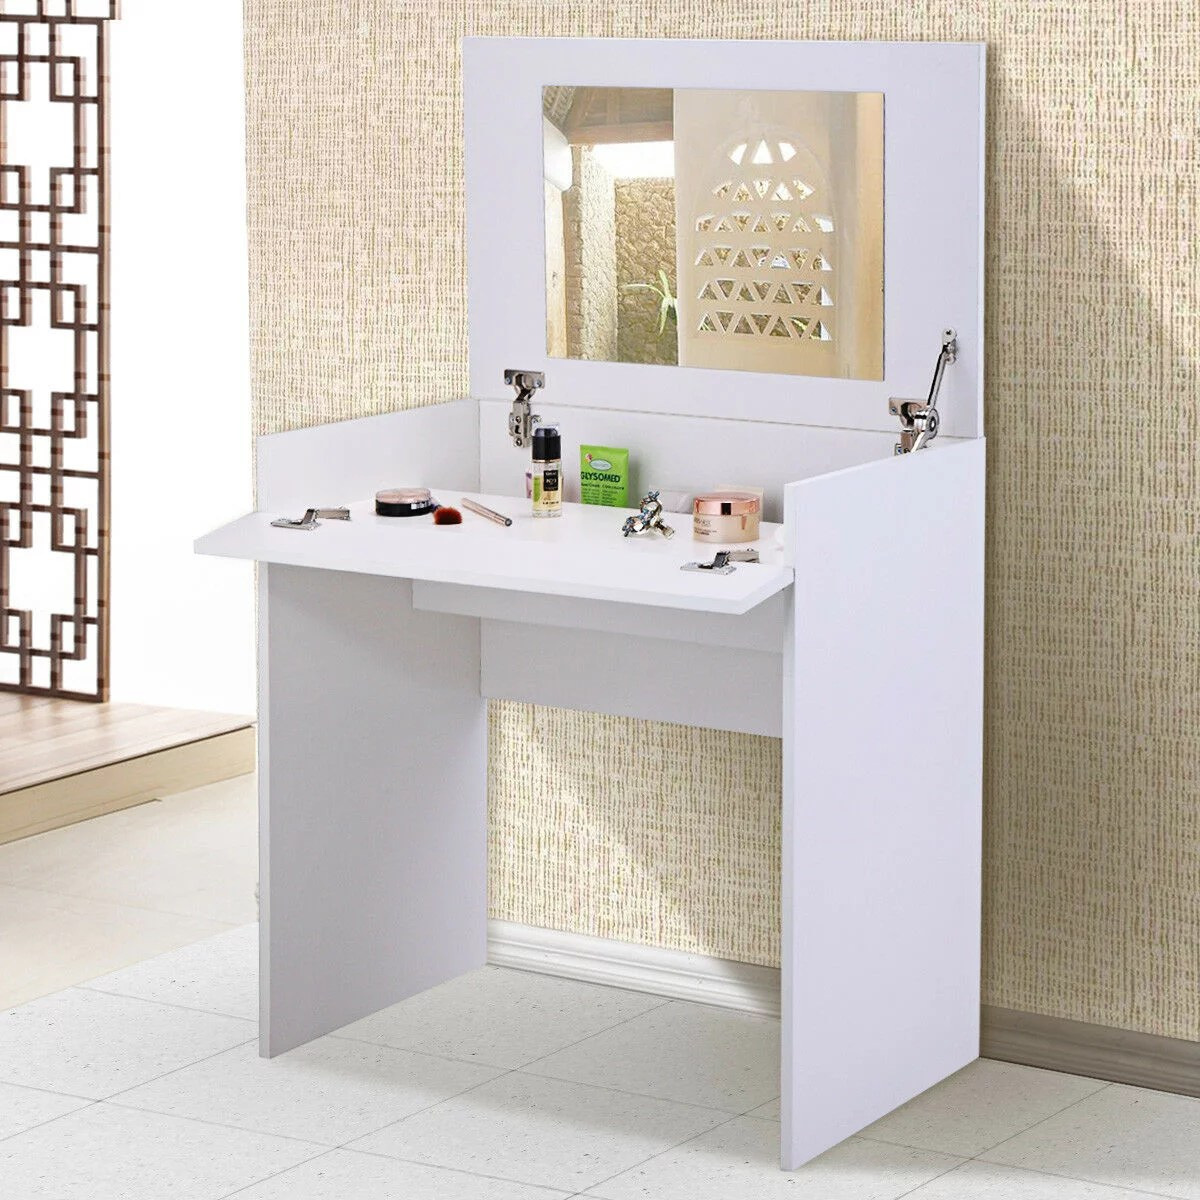 veryke vanity set makeup vanity table for bedroom makeup table dressing table with flip up mirror and hidden storage box white